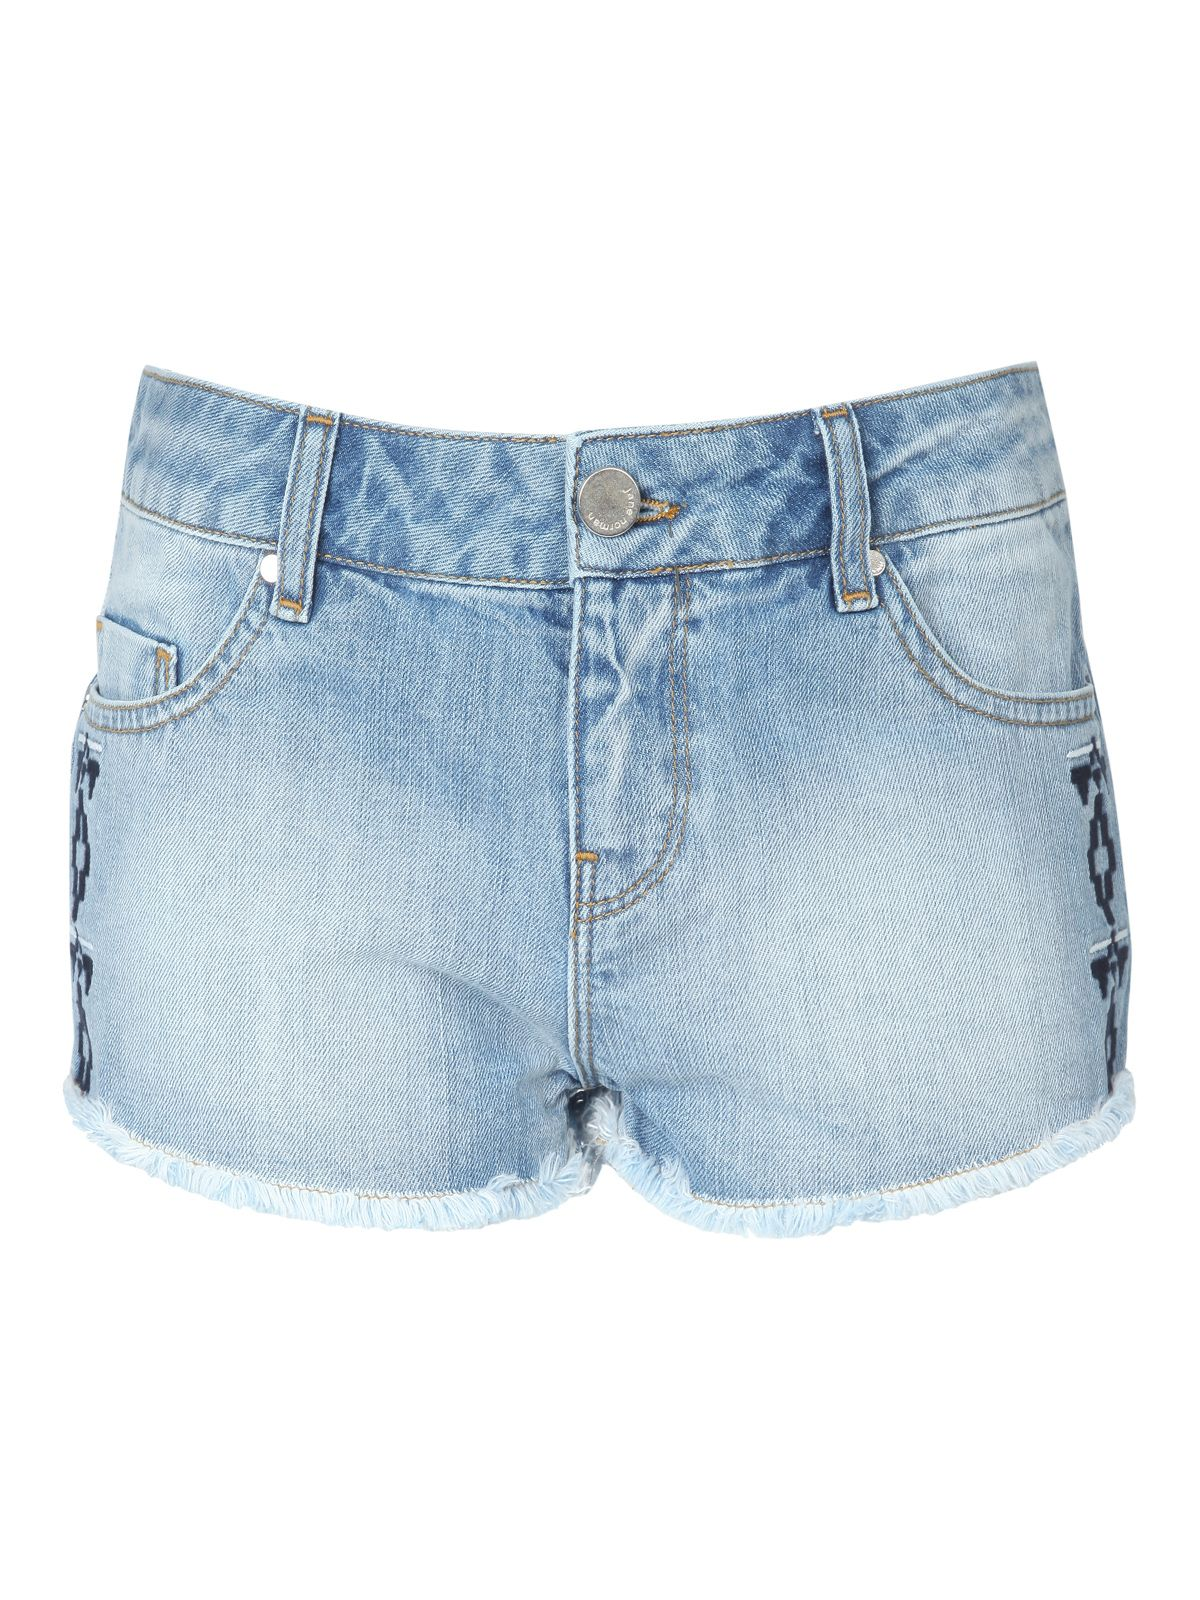 Embroidered Denim Hotpant Shorts